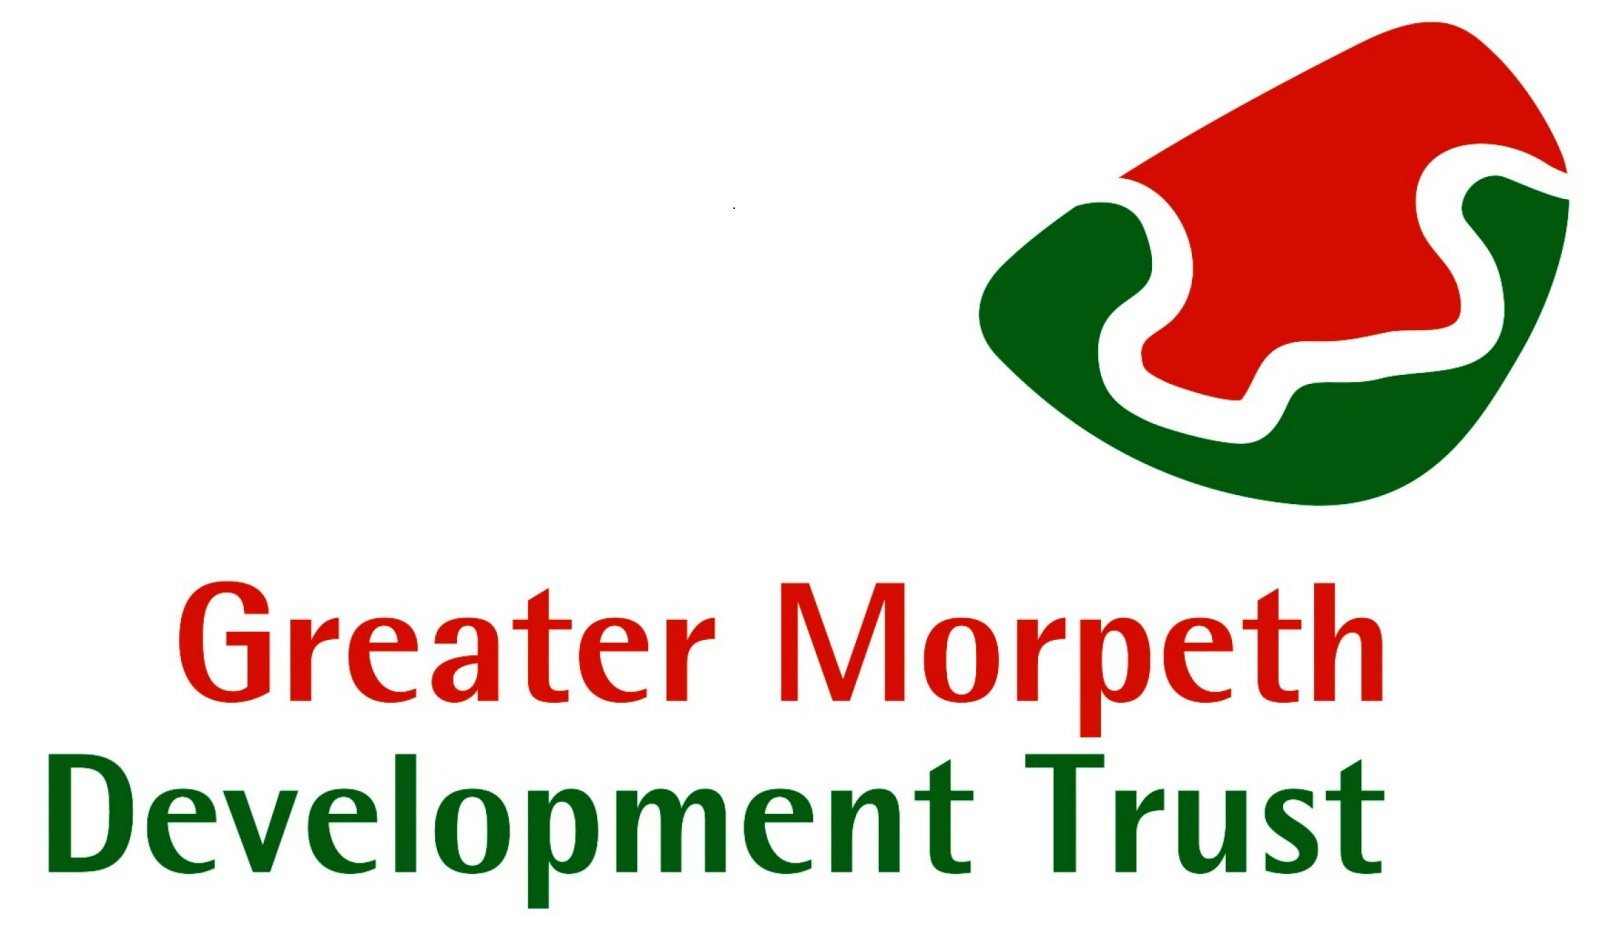 Greater Morpeth Development Trust